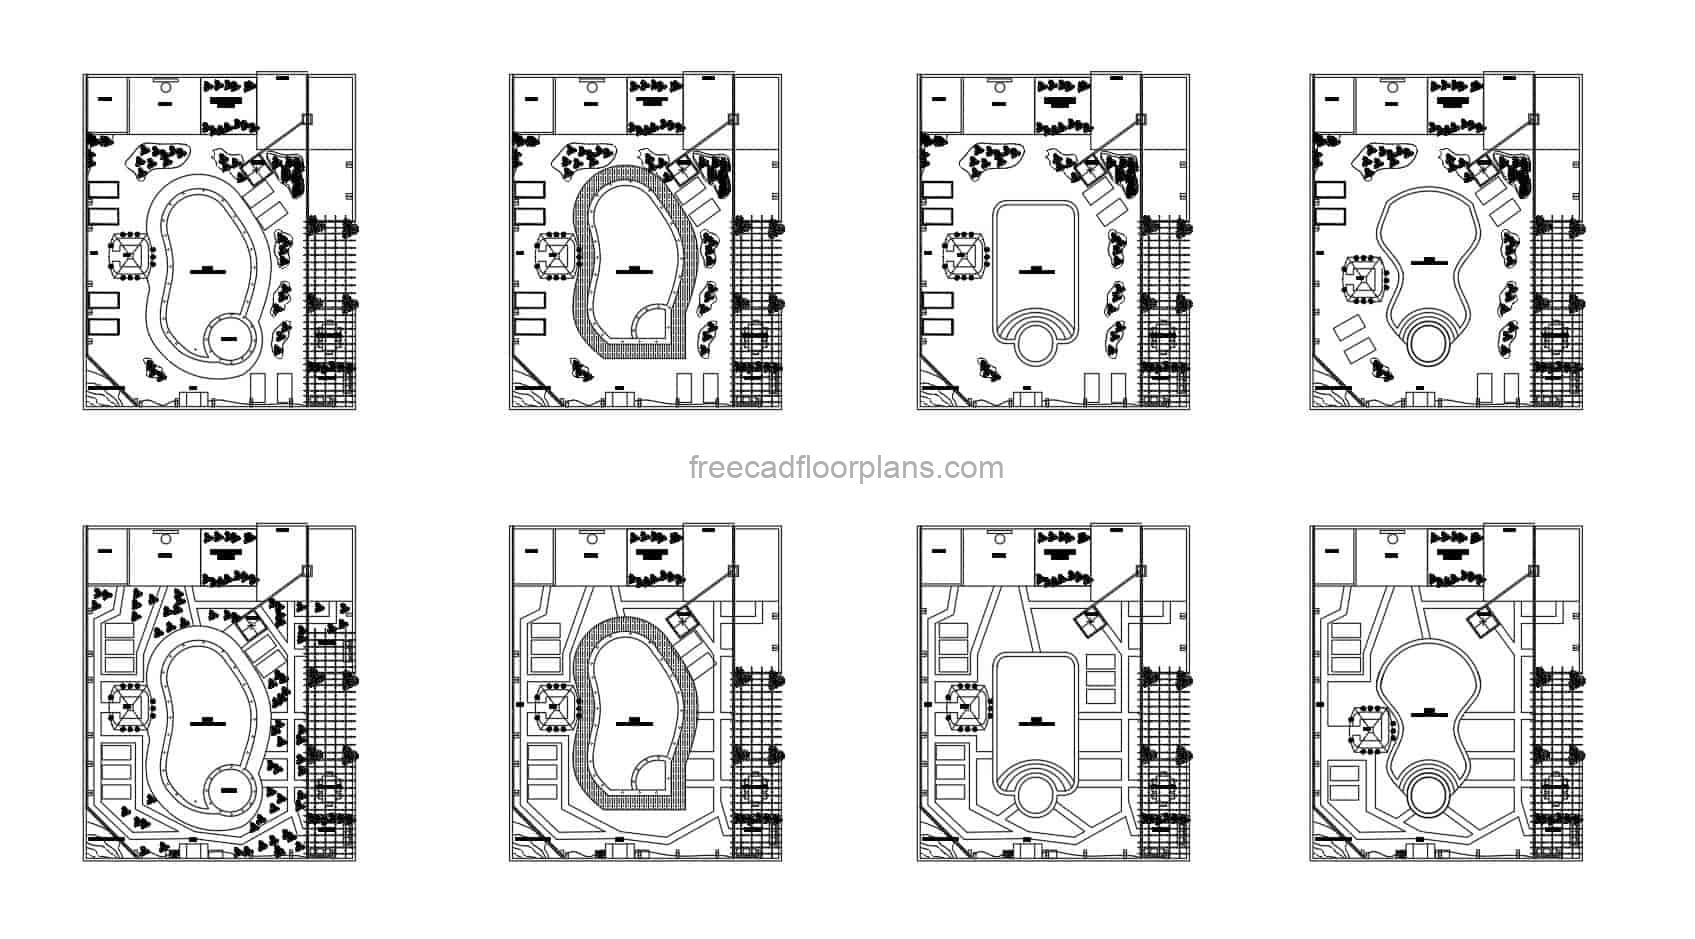 Swimming Pools Diferente Proposed designs in autocad dwg for free download, swimming pools with courts, bbq and recreation area, different forms